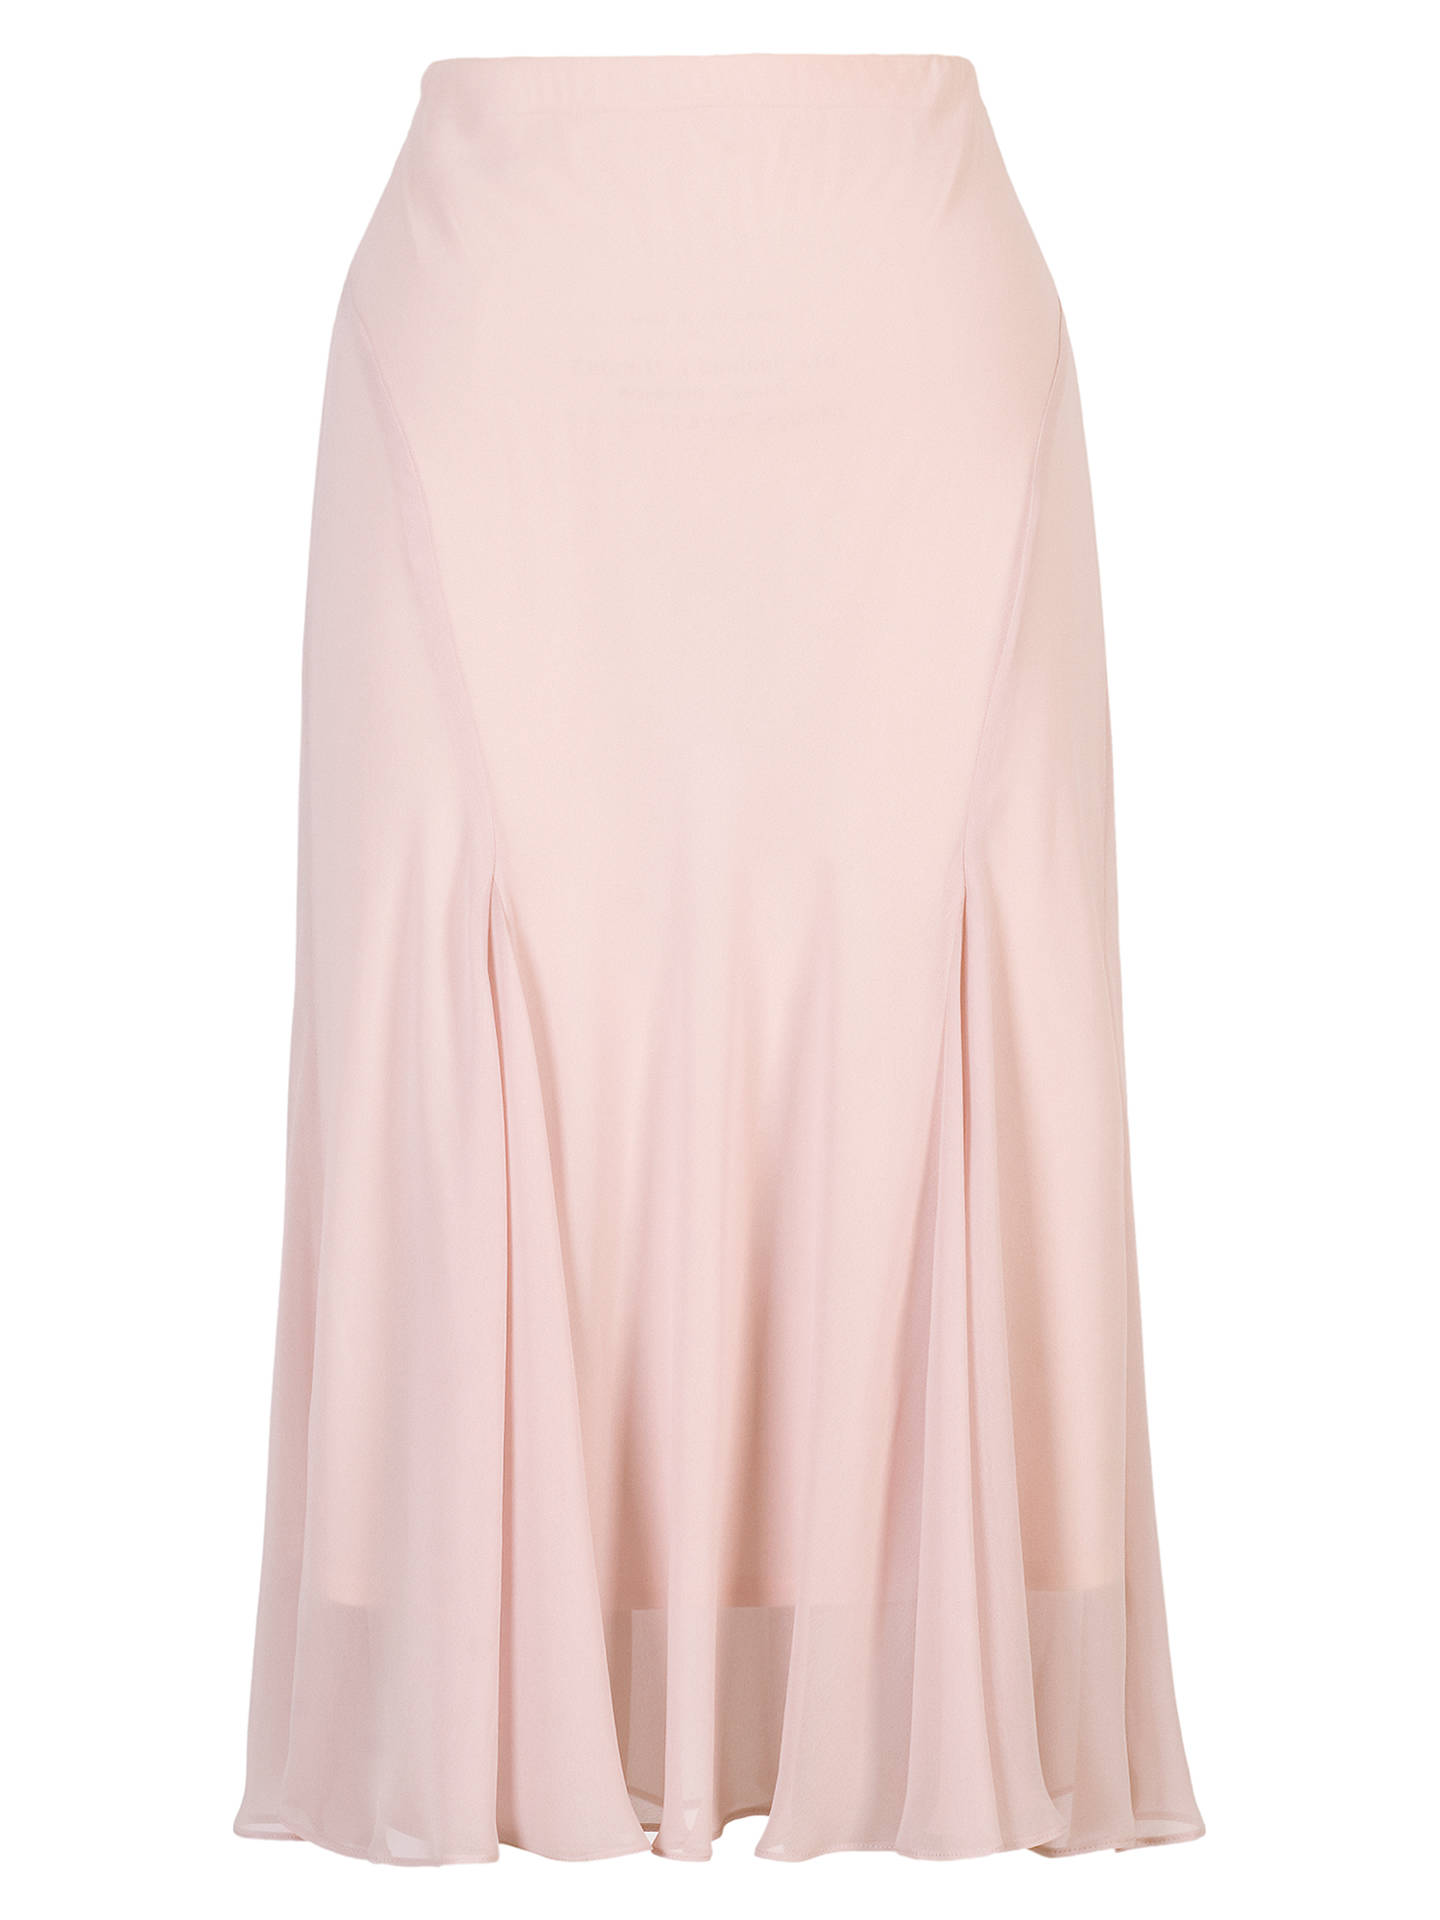 BuyChesca Chiffon Skirt, Dark Blush, 12 Online at johnlewis.com